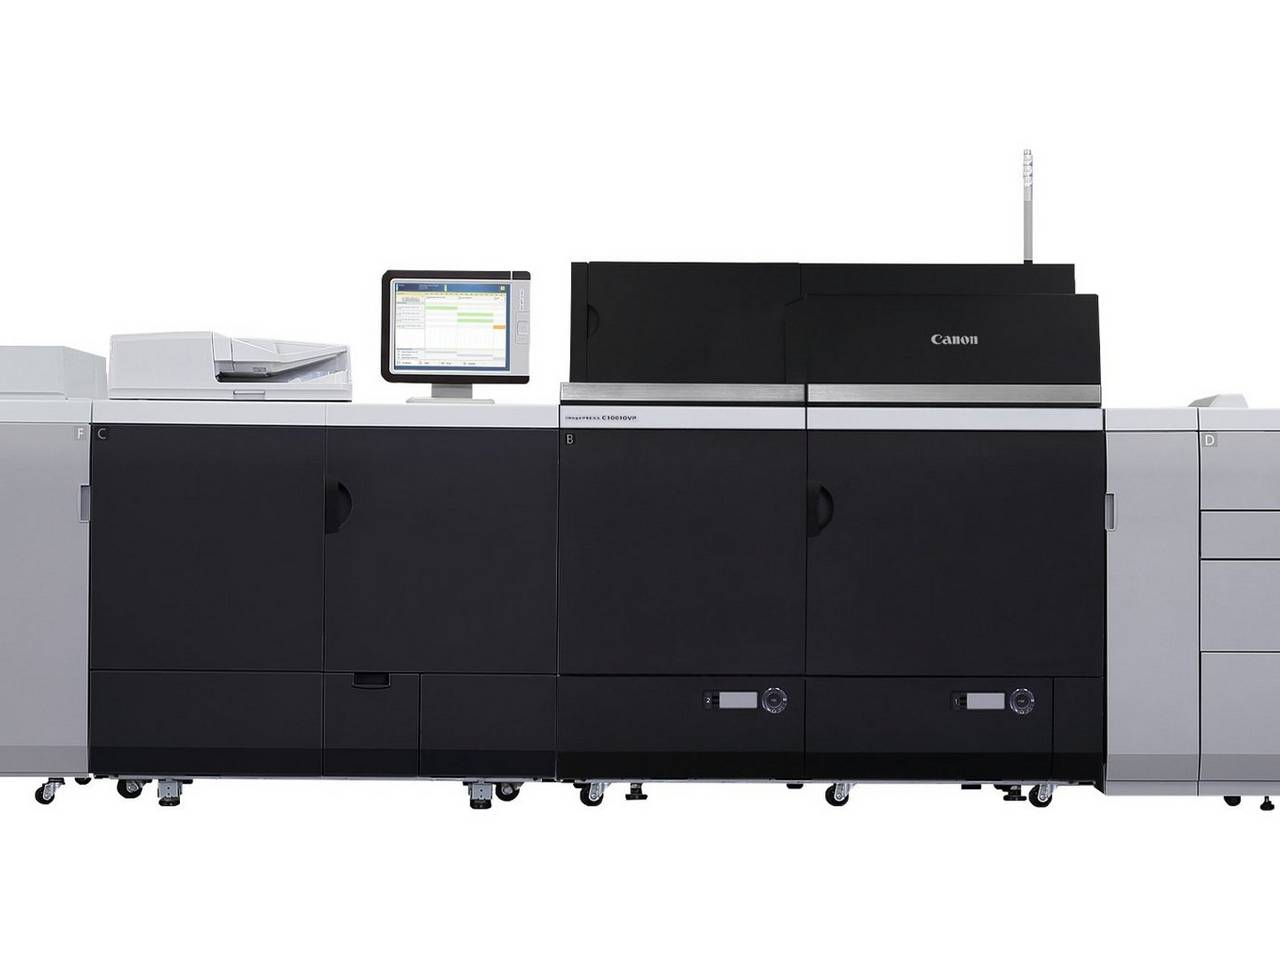 imagePRESS c10000VP printer